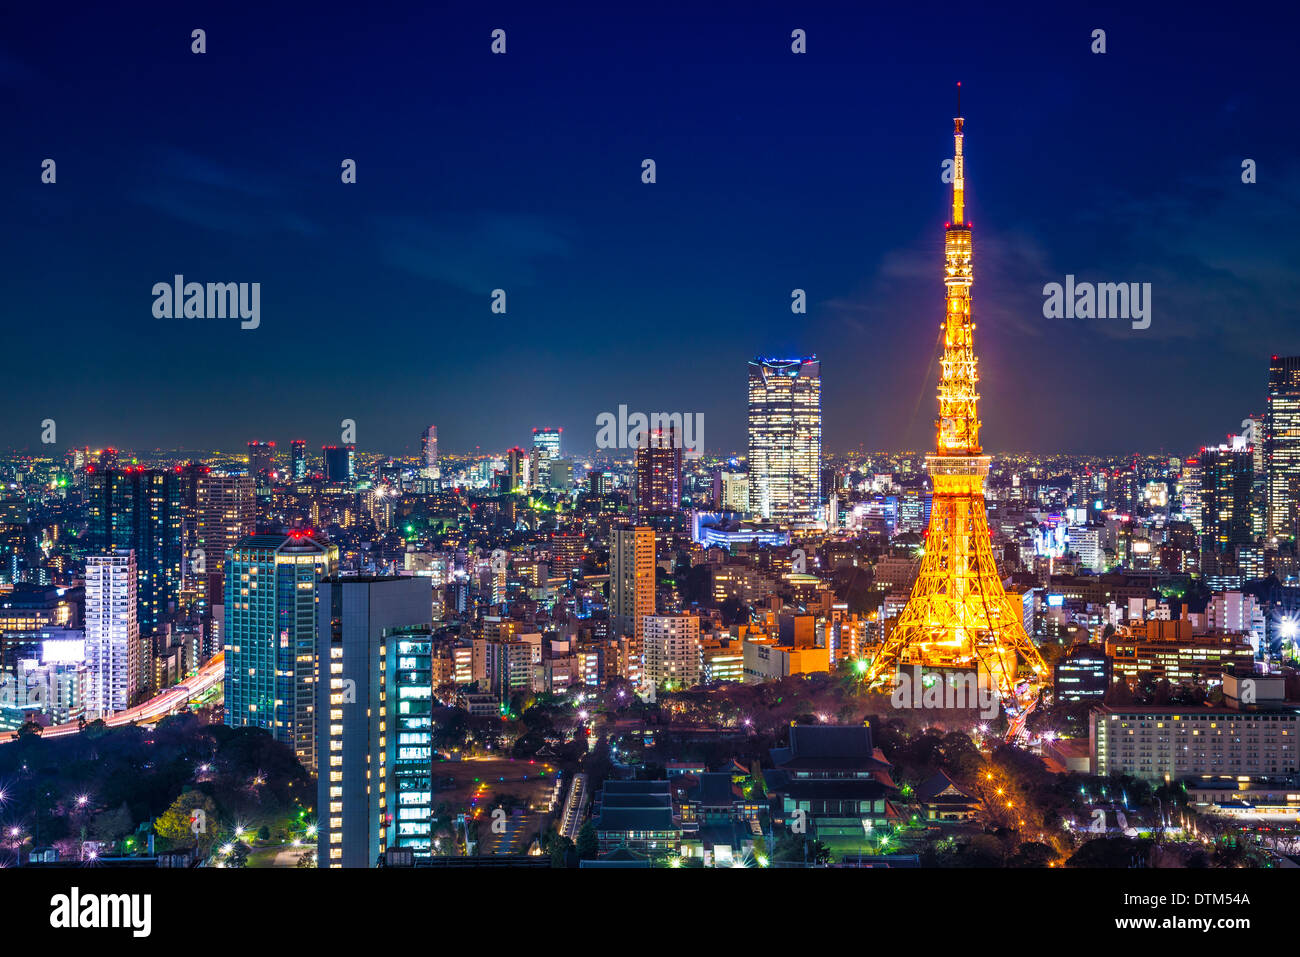 Tokyo, Japan cityscape aerial cityscape view at night. - Stock Image